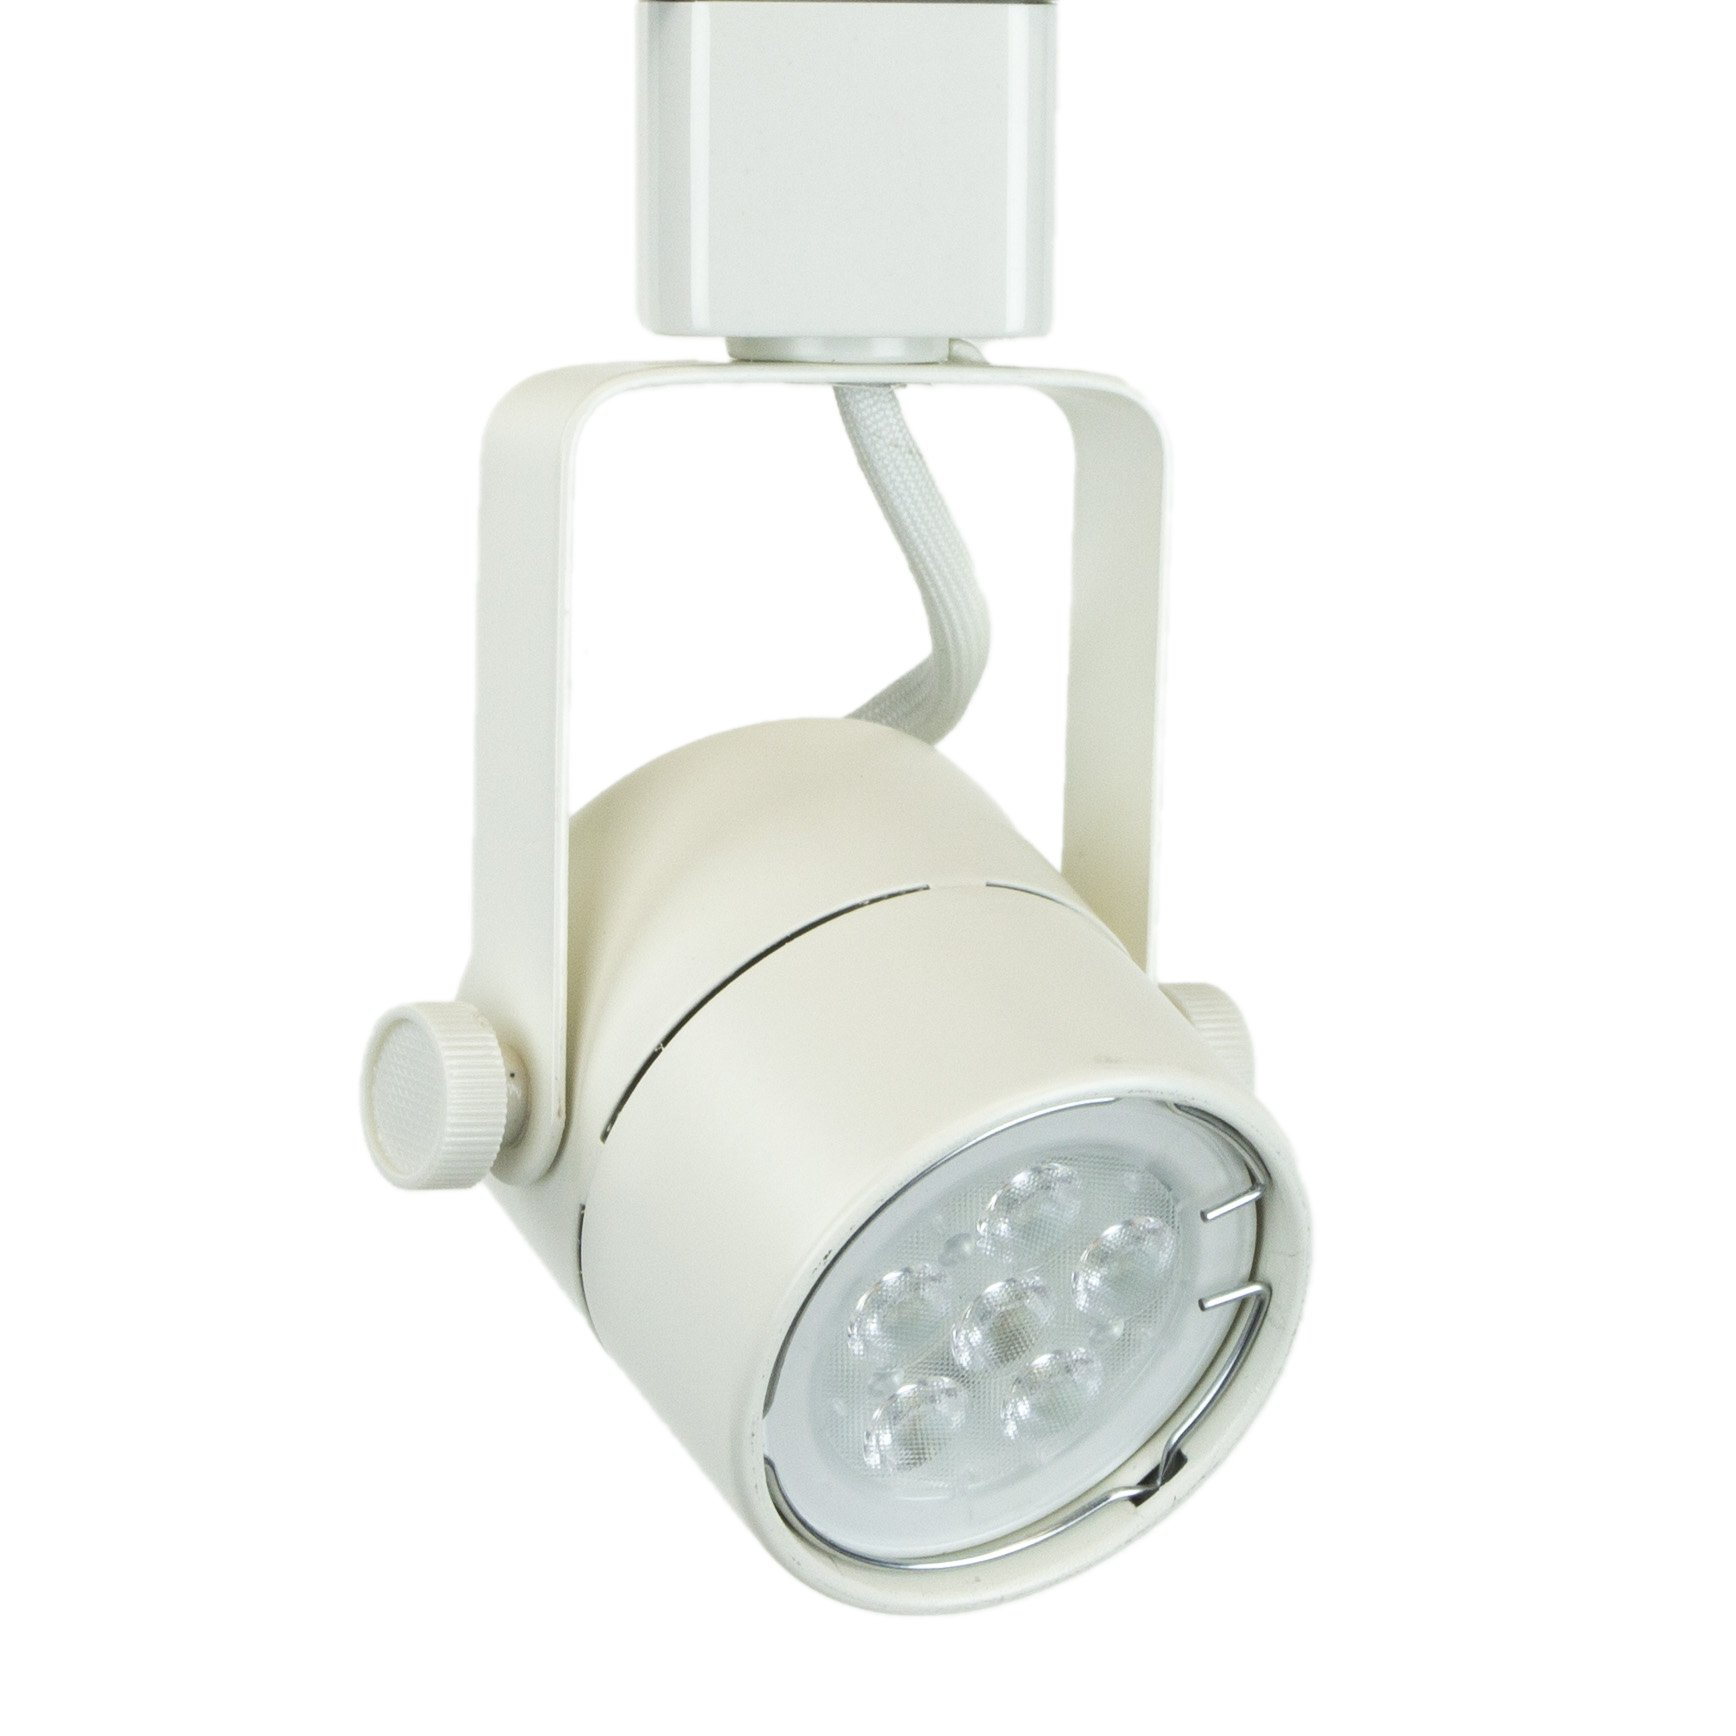 Direct-Lighting H System 3000K GU10 LED Track Lighting Head White - with 3000K Warm White 7.5W LED Bulb 50154L